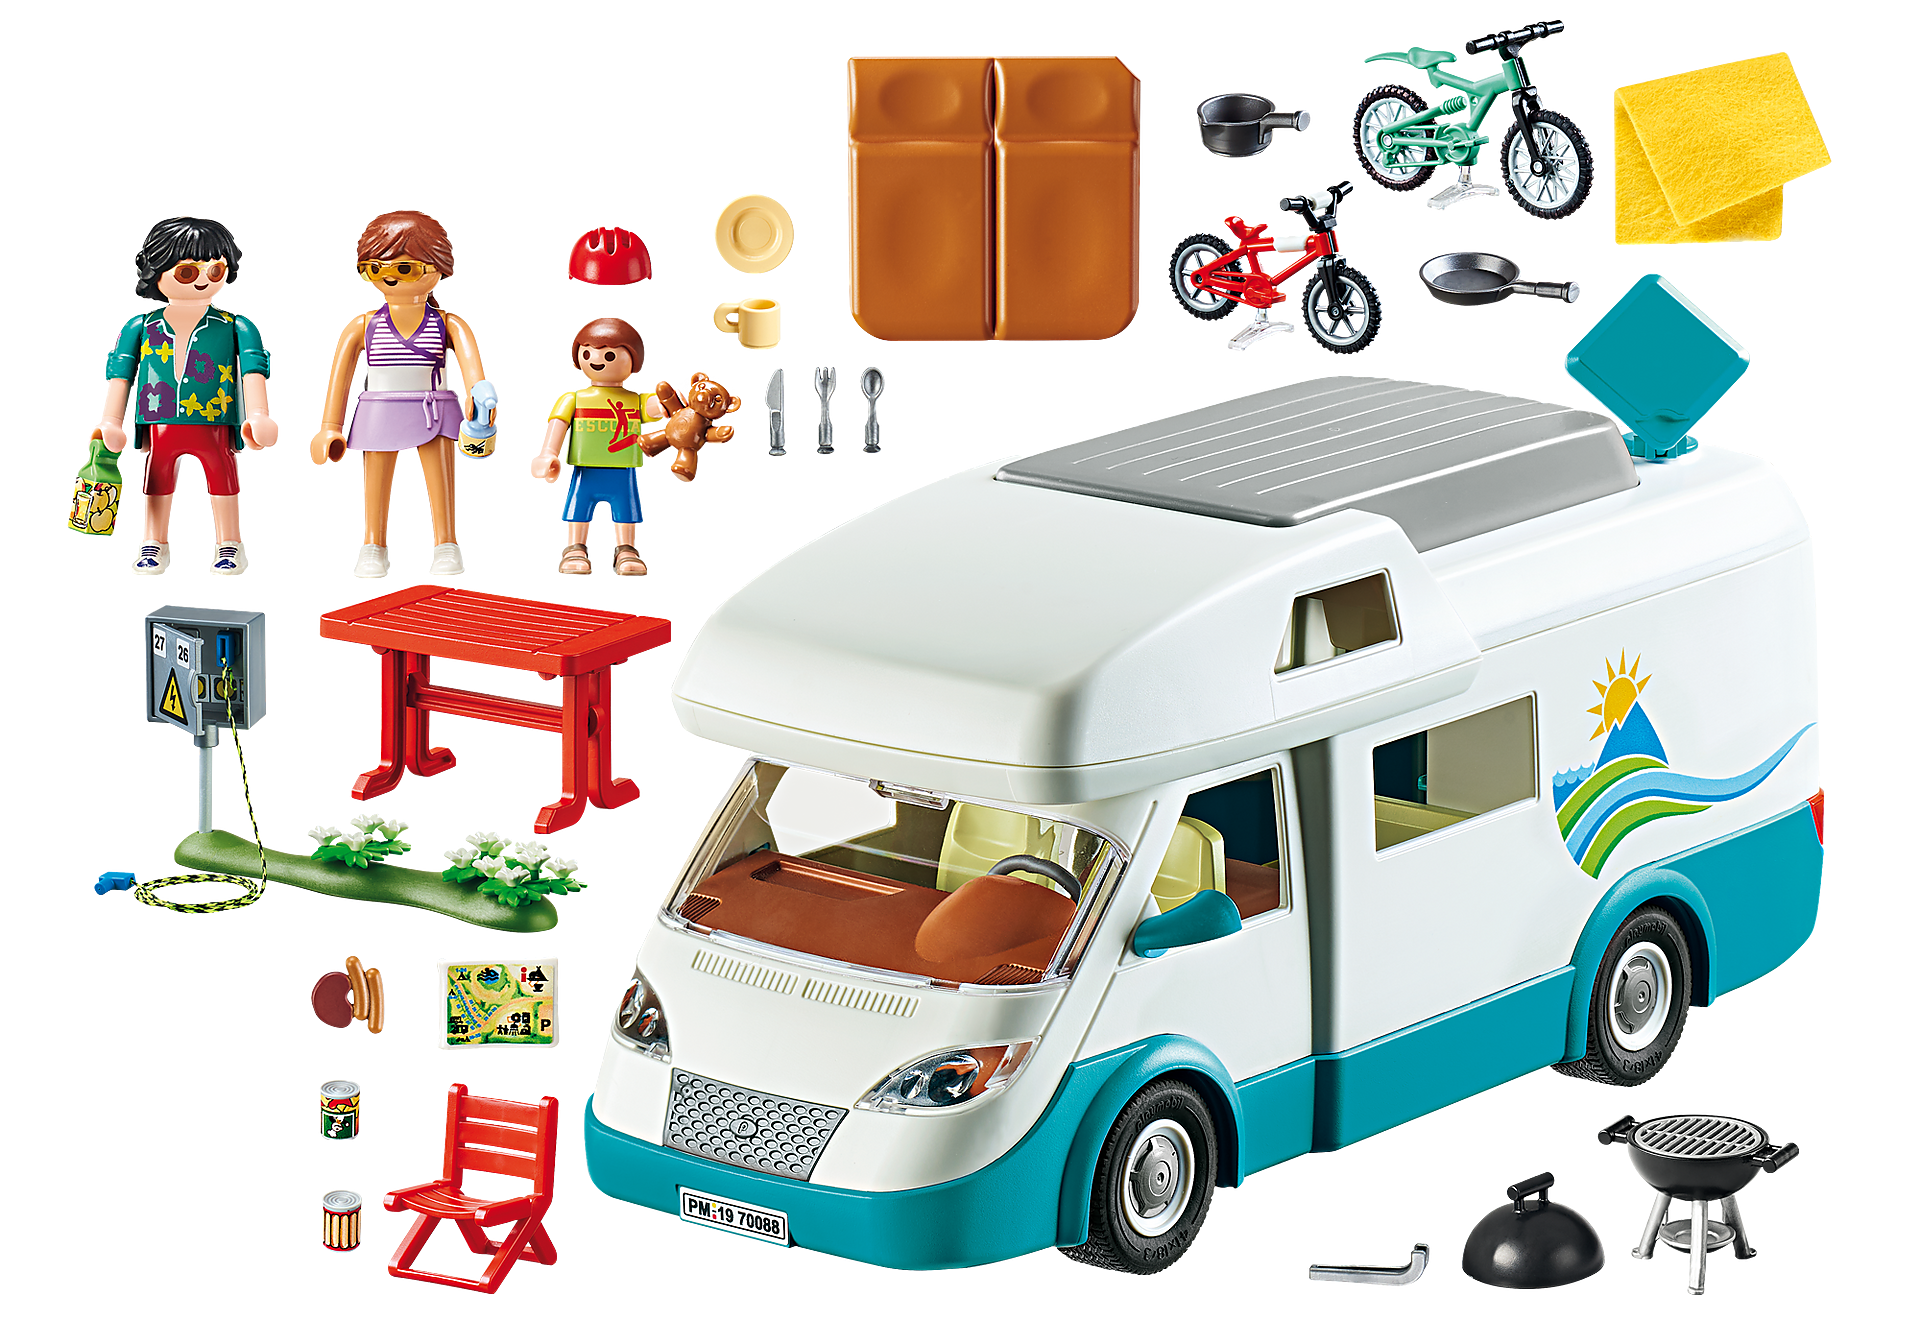 70088 Familien-Wohnmobil zoom image3